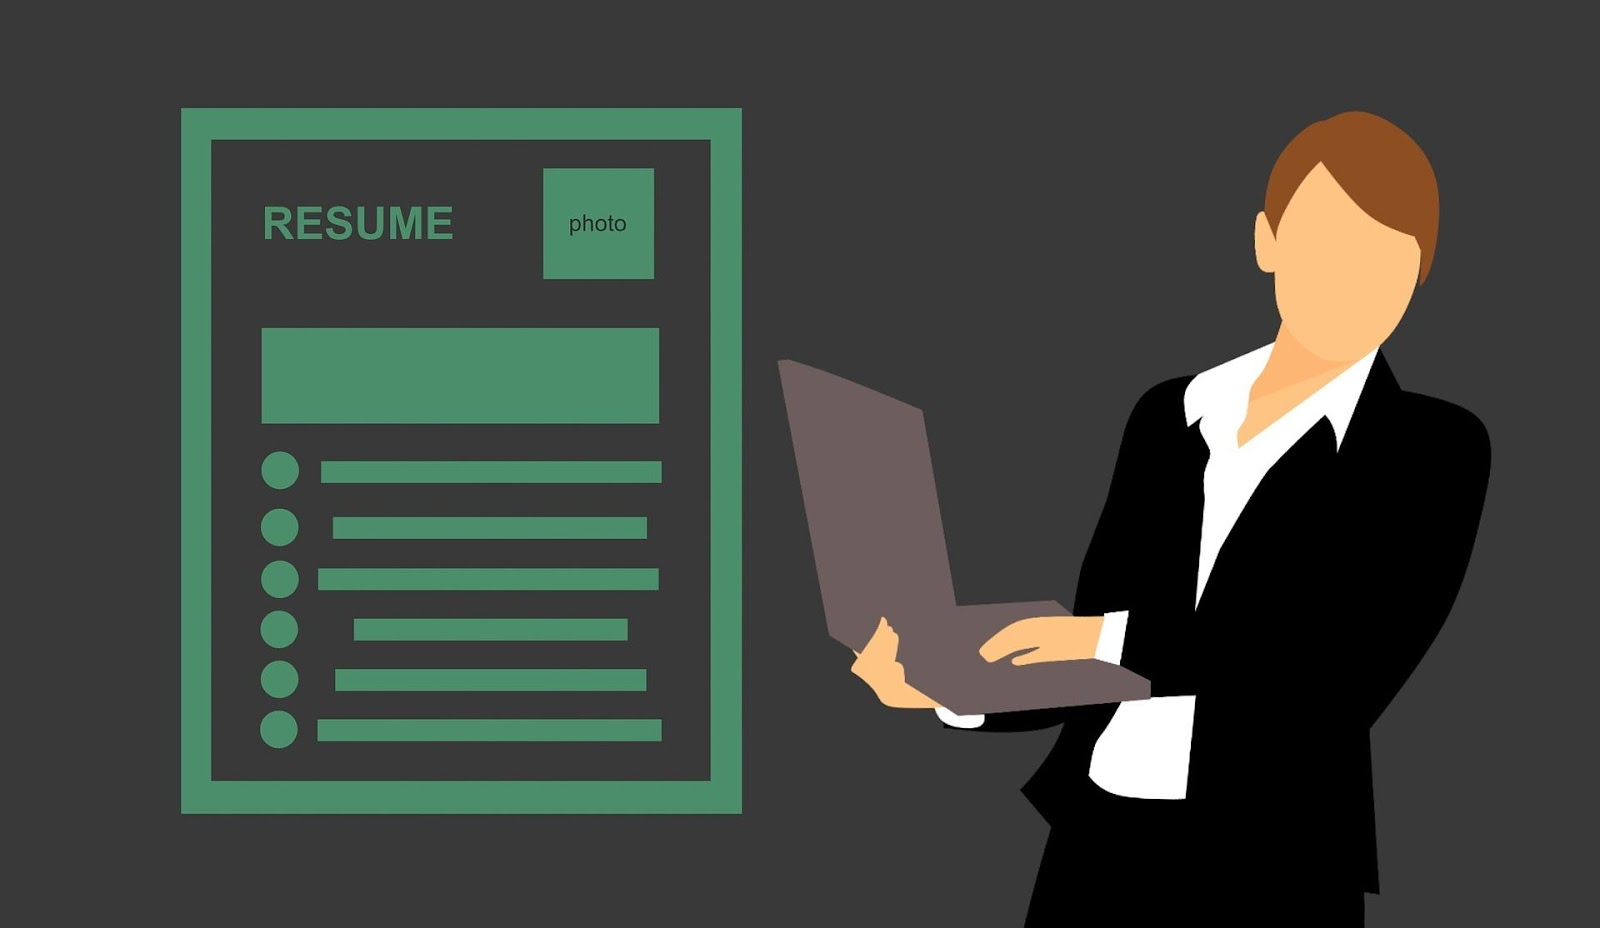 Tips and Tricks To Write A Job Letter And A Resume Like A Pro